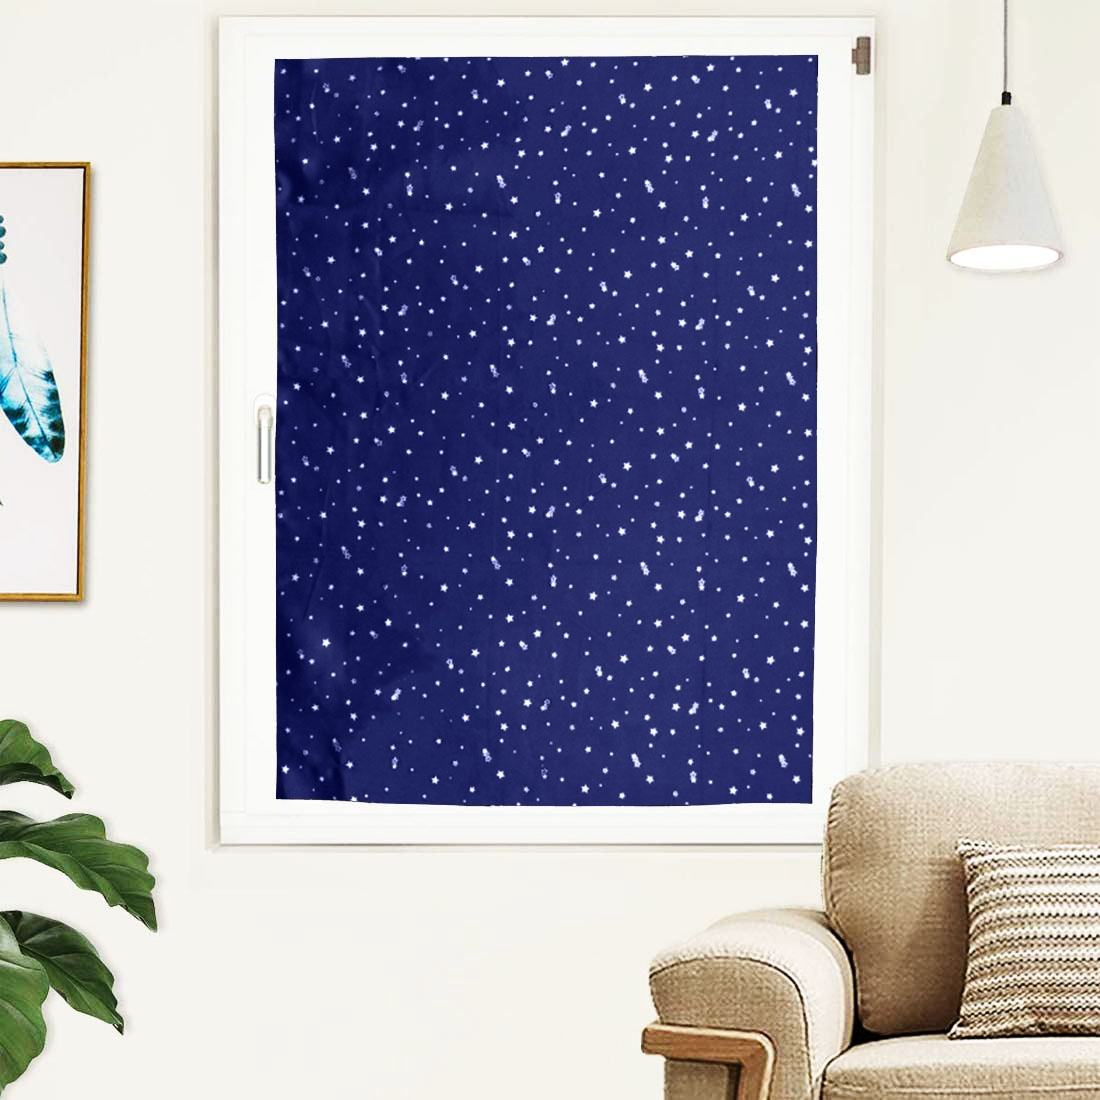 High quality stars printed portable blackout blind curtain removable black suction cups curtain